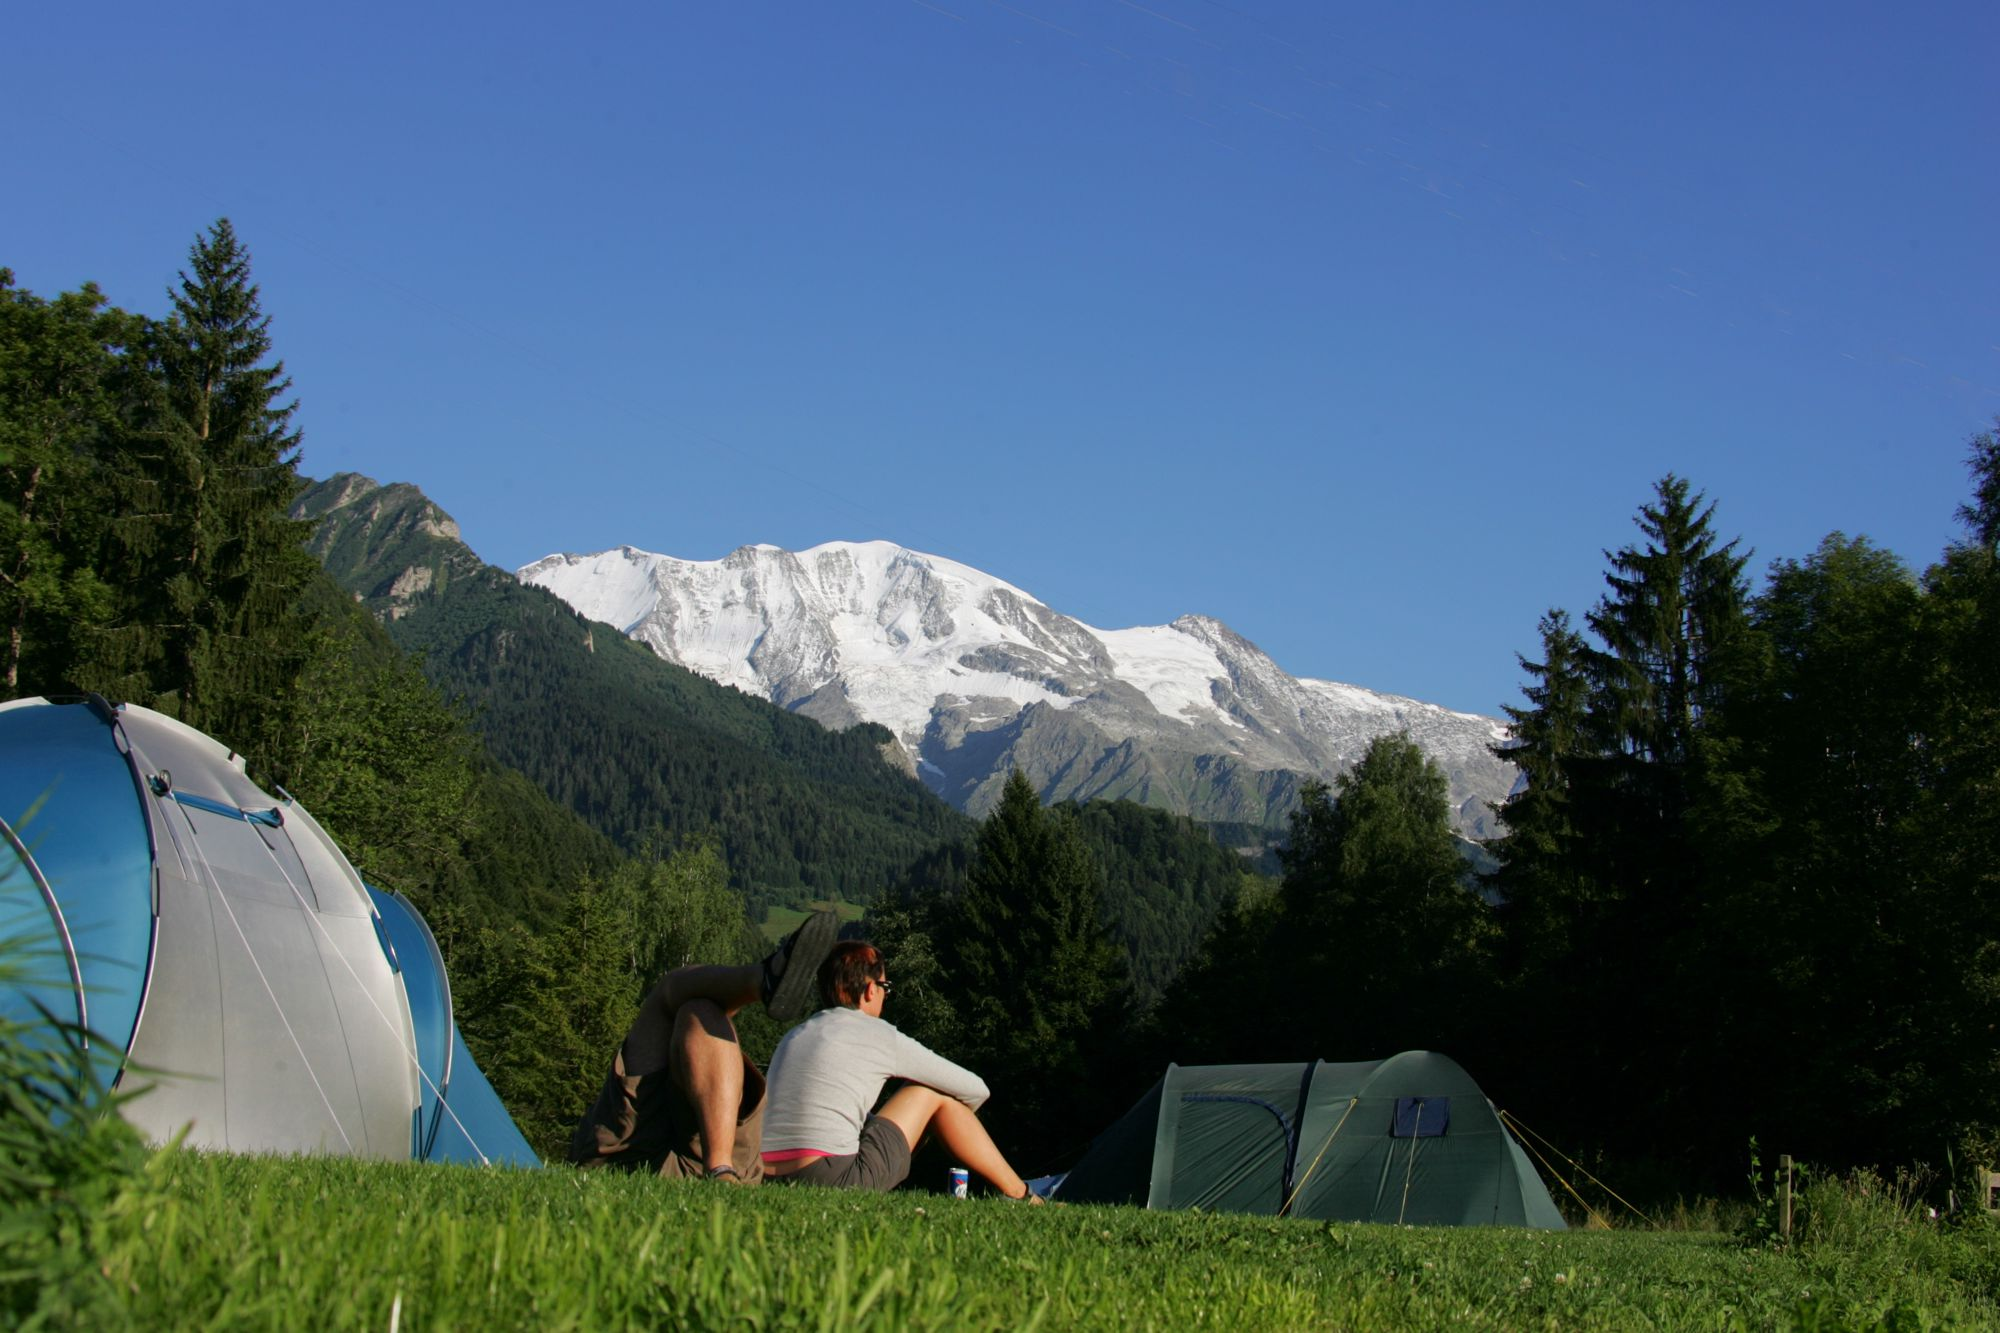 A campsite on the roof of Europe – Camping Les Dômes de Miage offers breathtaking views of the mighty Mont Blanc.